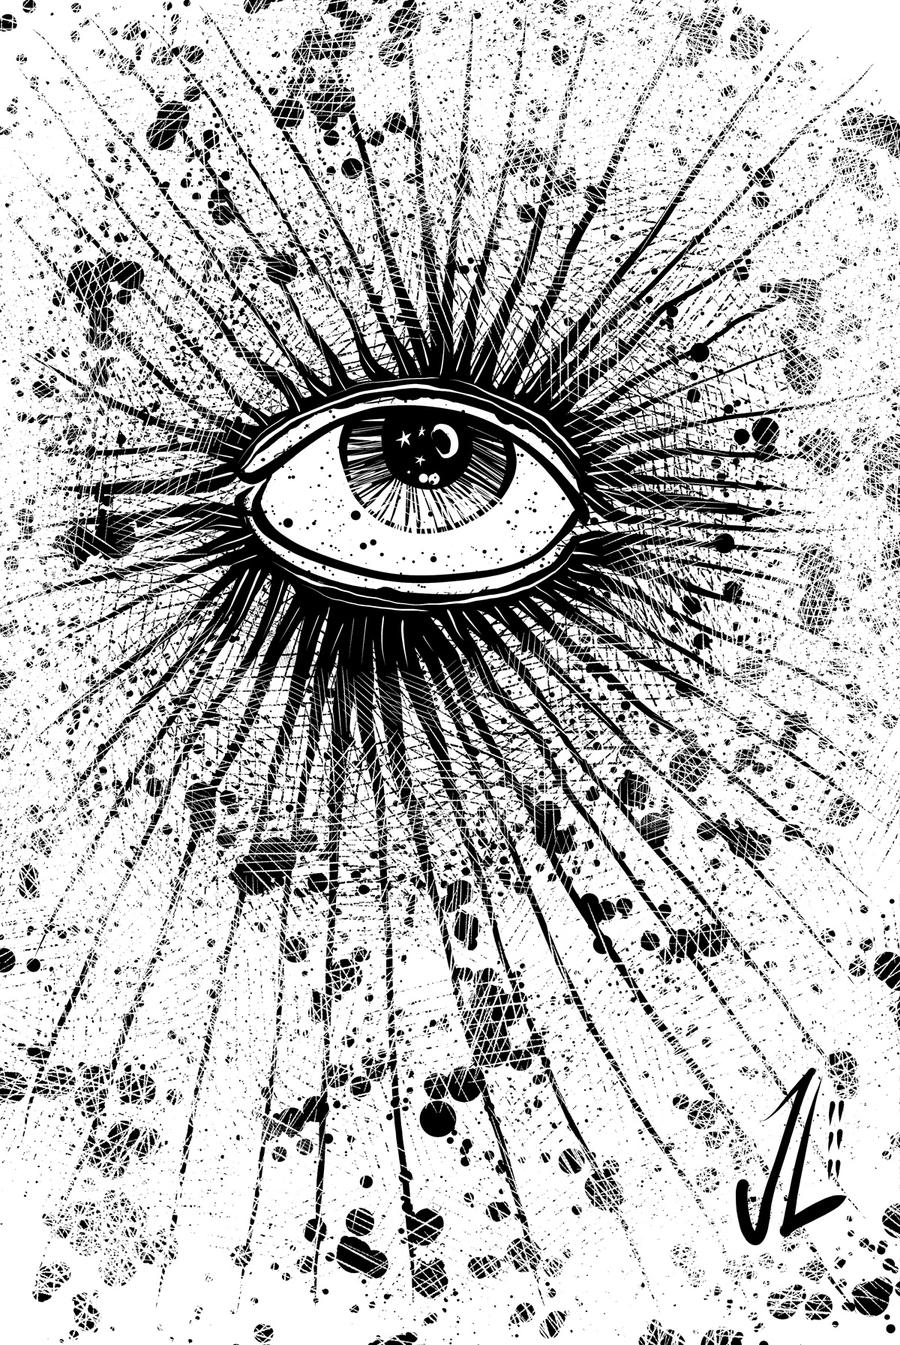 Eye - NOV '11 Sketch a Day 11 by JeremiahLambertArt